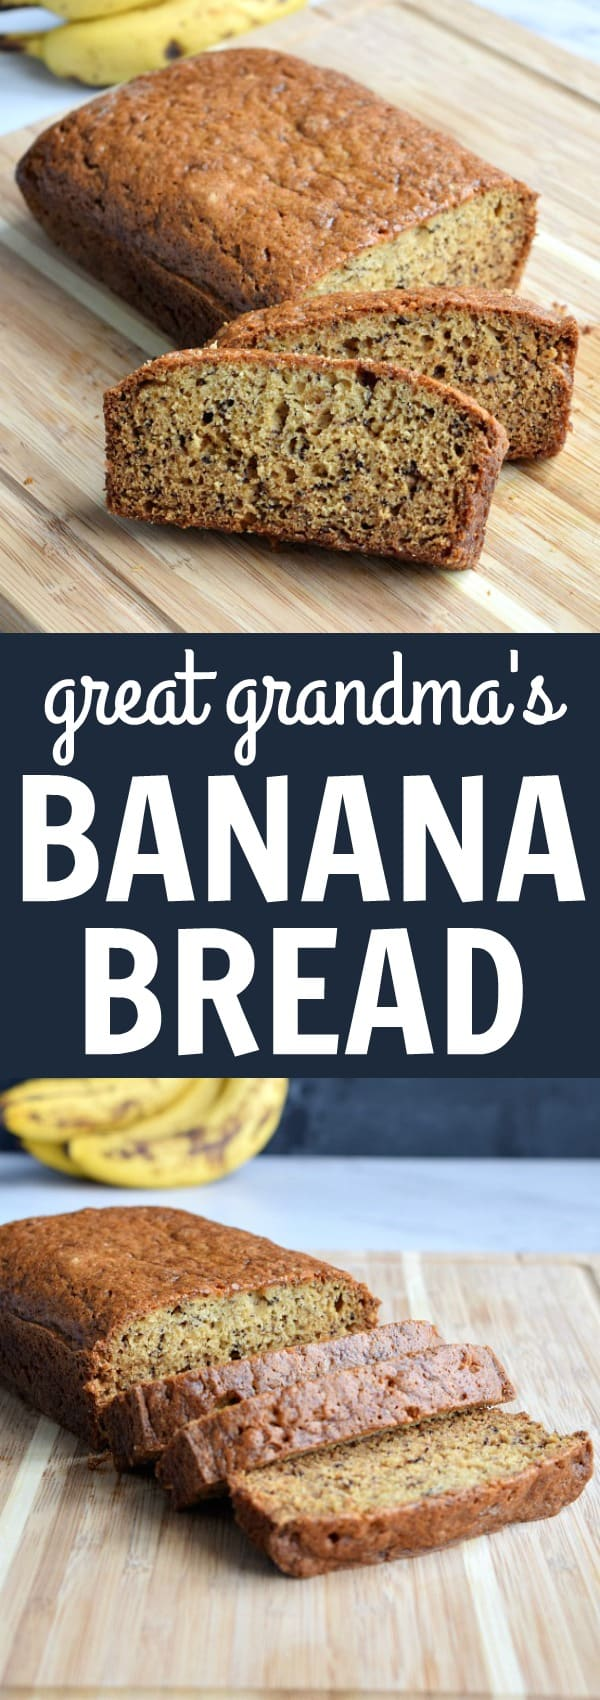 Banana Bread just like Great Grandma used to make